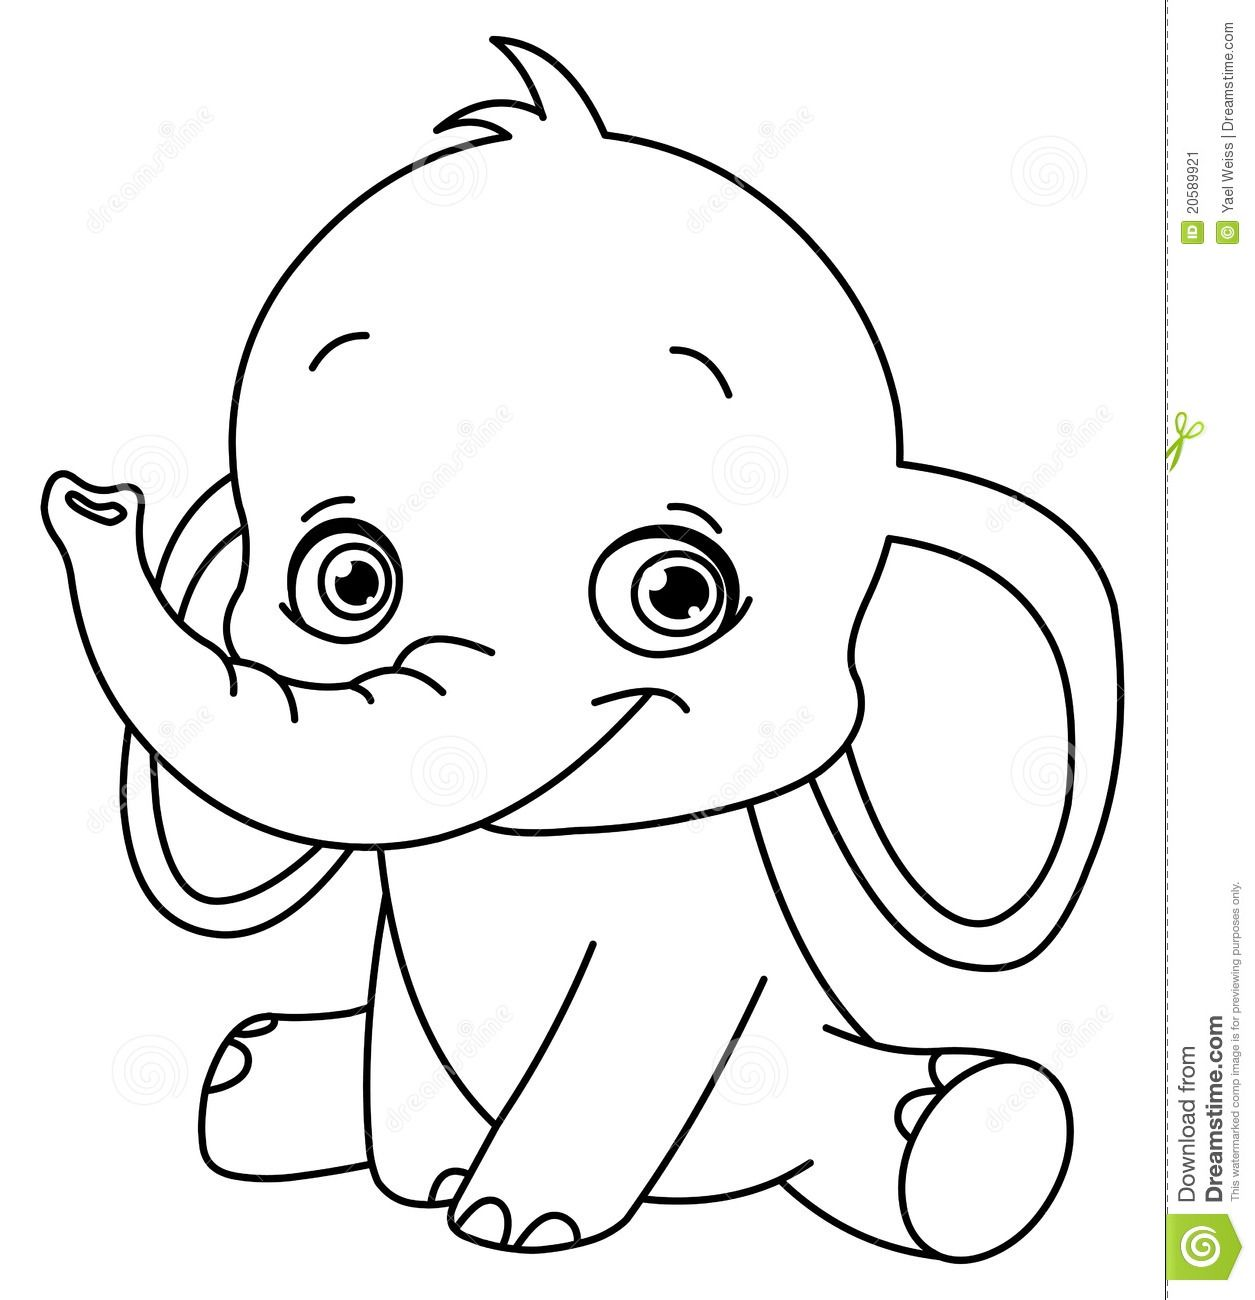 photograph relating to Elephant Coloring Pages Printable named Kid elephant coloring webpages toward obtain and print for cost-free